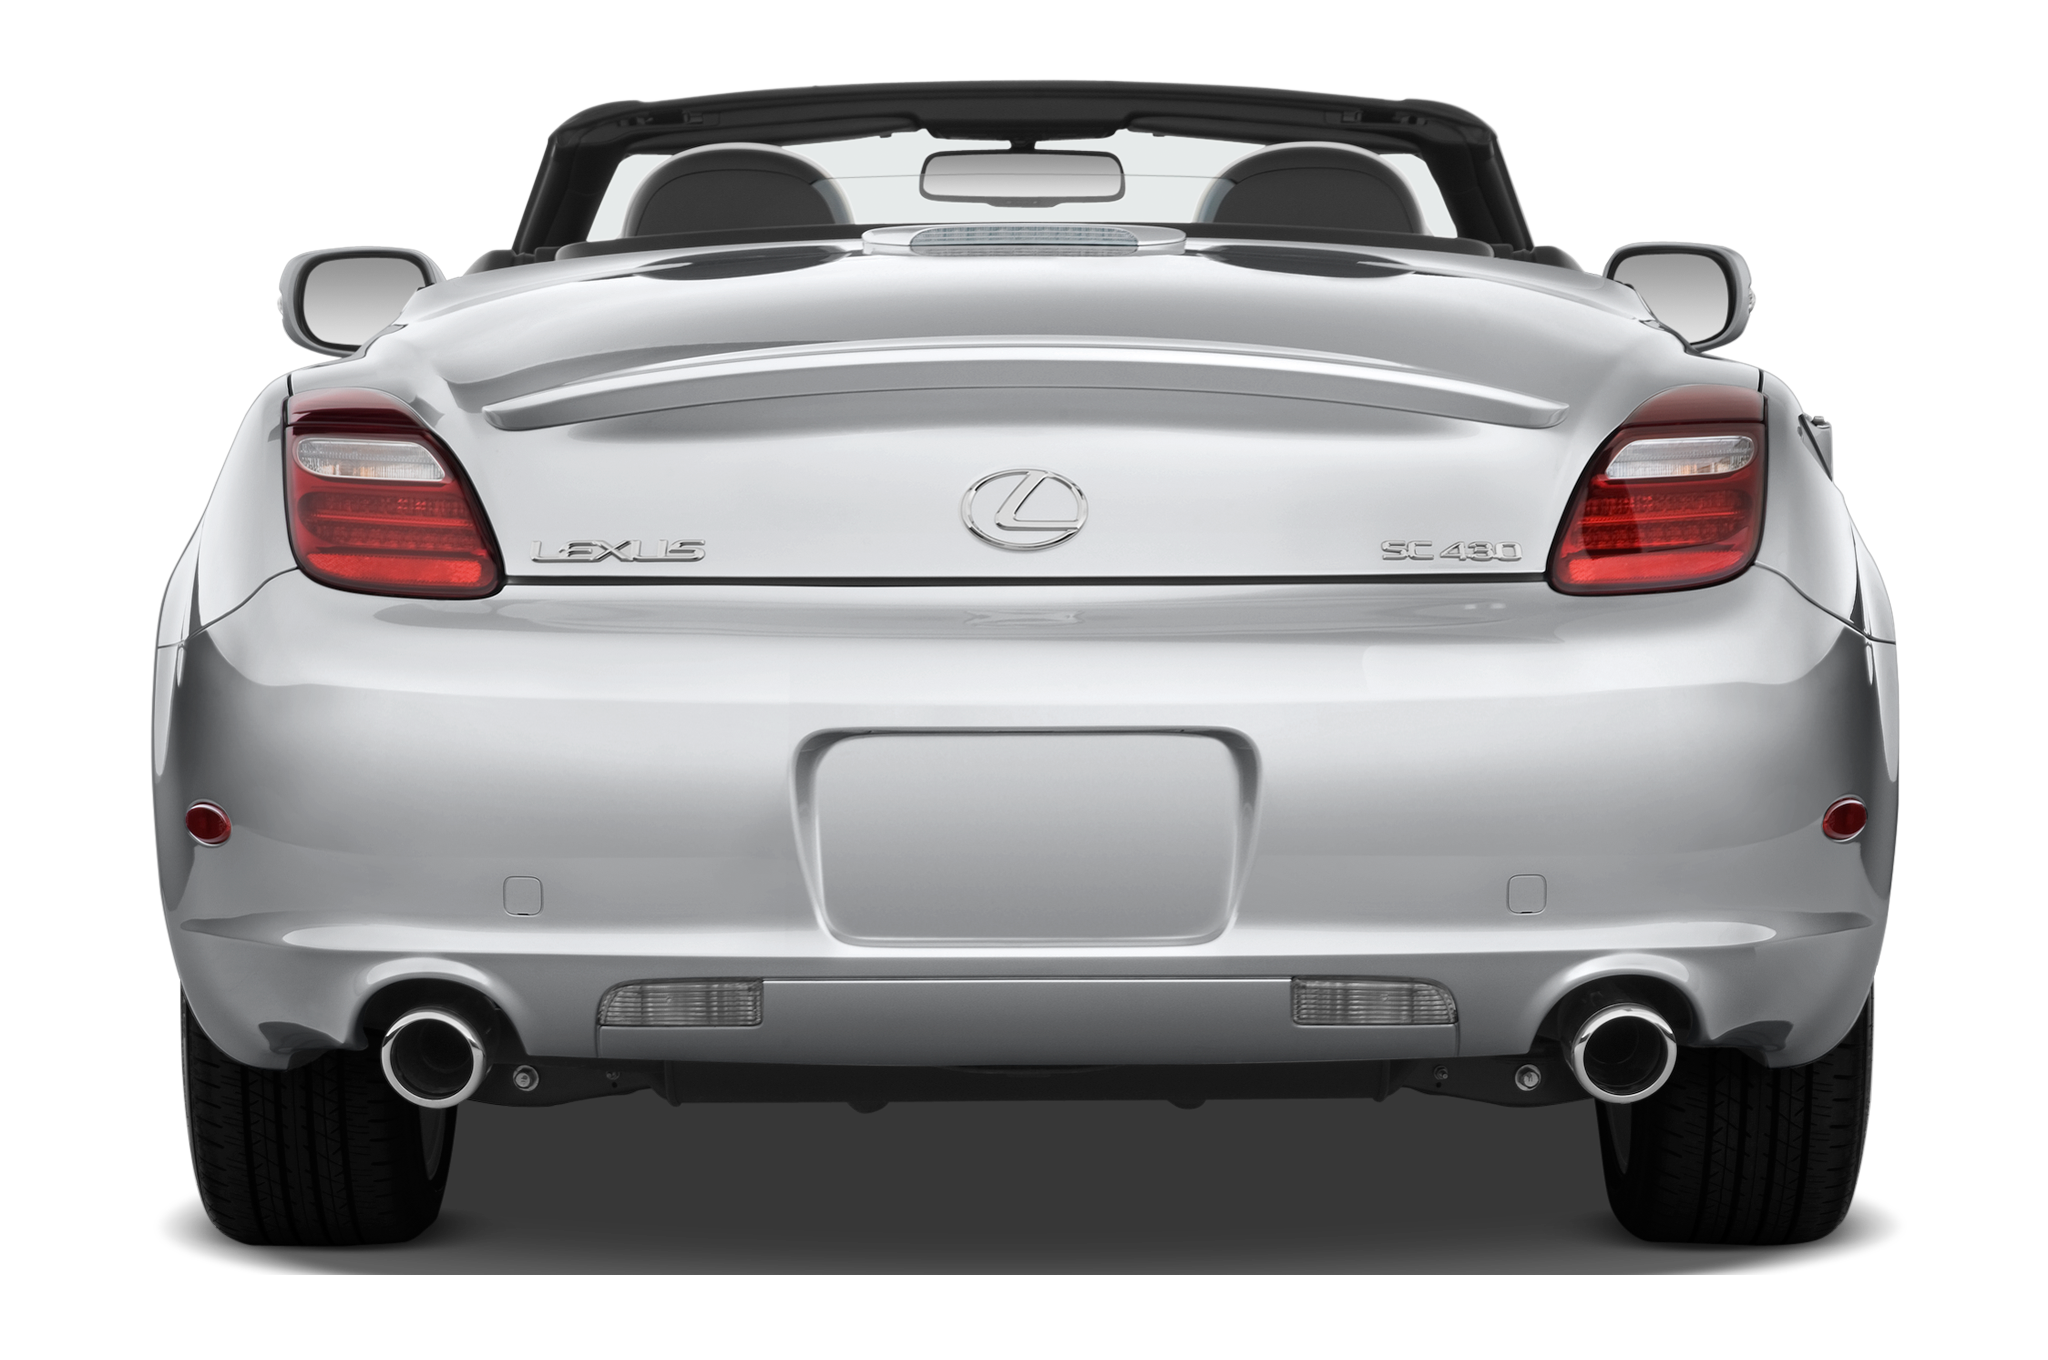 Confirmed Lexus SC 430 to be Discontinued in July